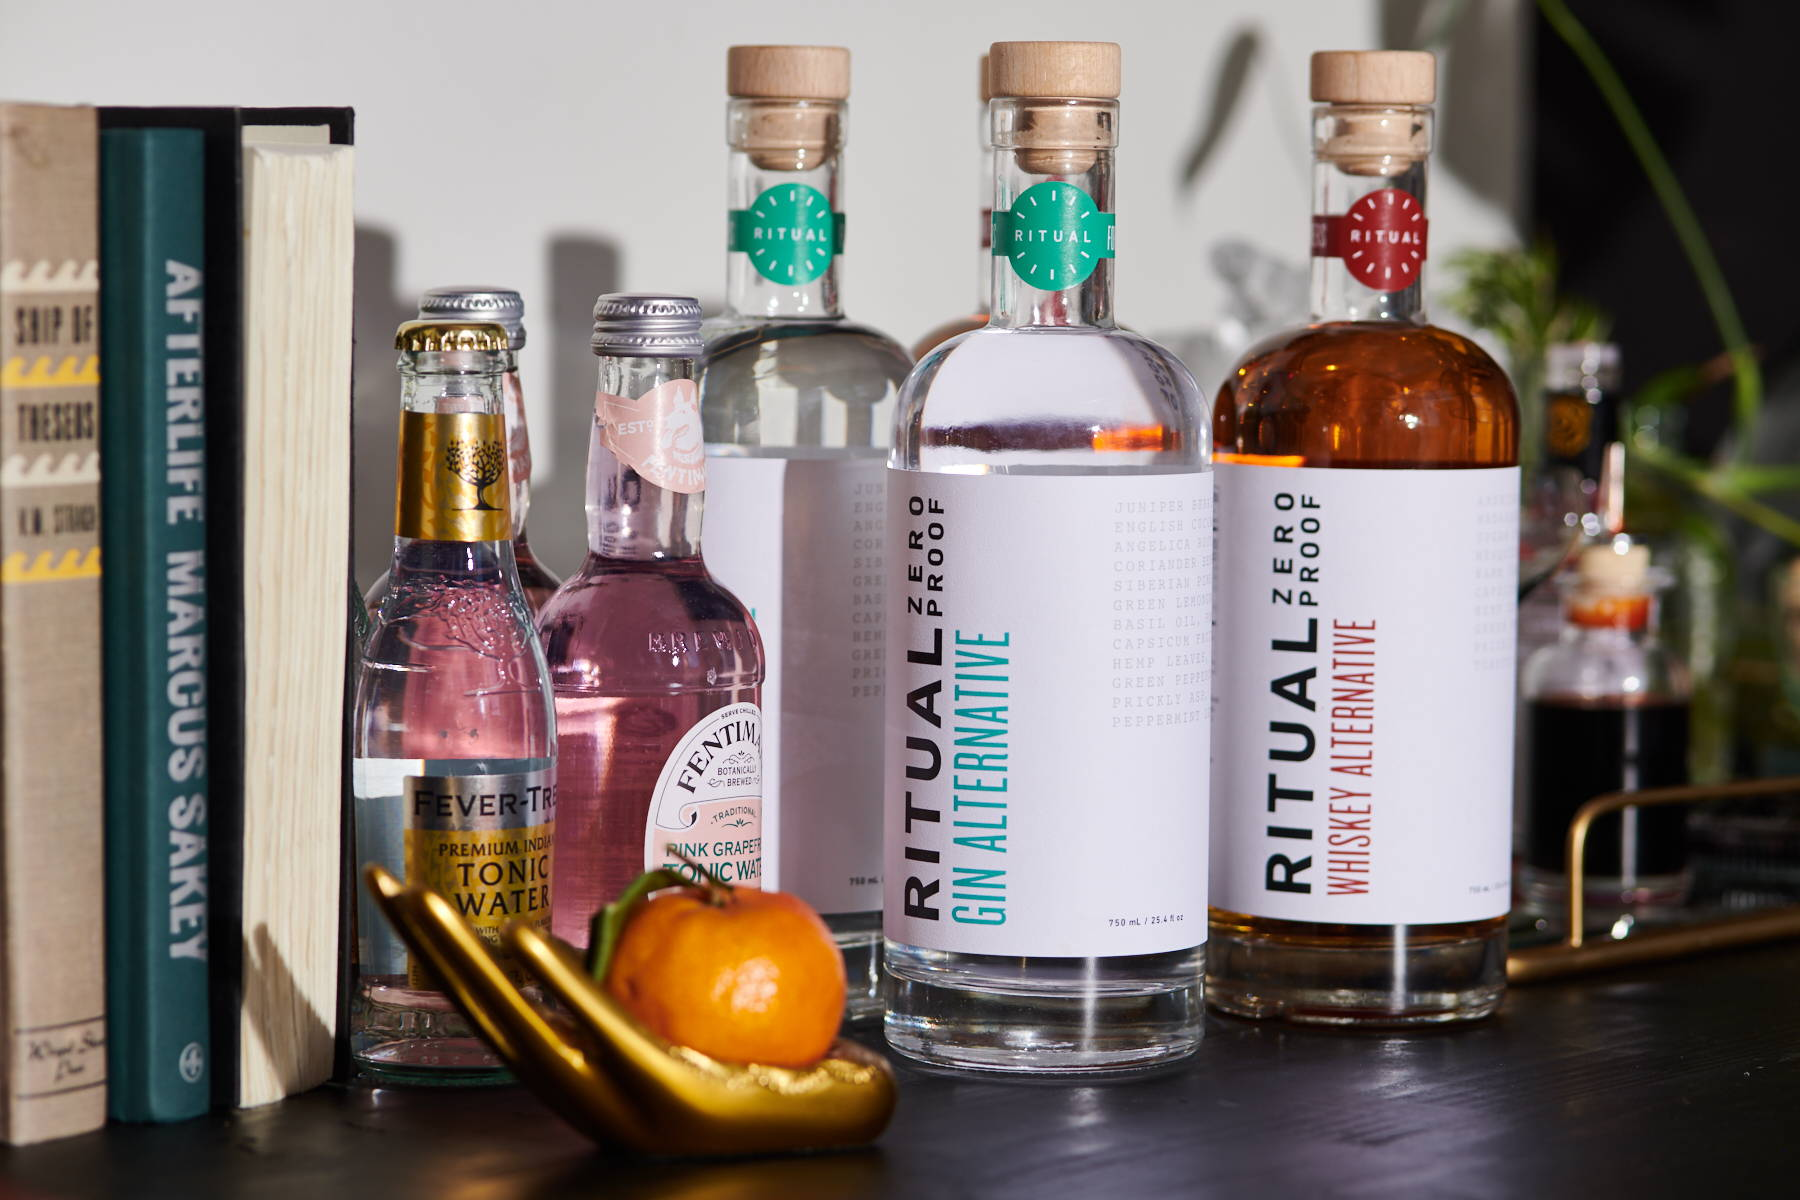 Bottles of Ritual spirit-free gin and whiskey alternatives, arranged with cocktail mixers and bar accessories.